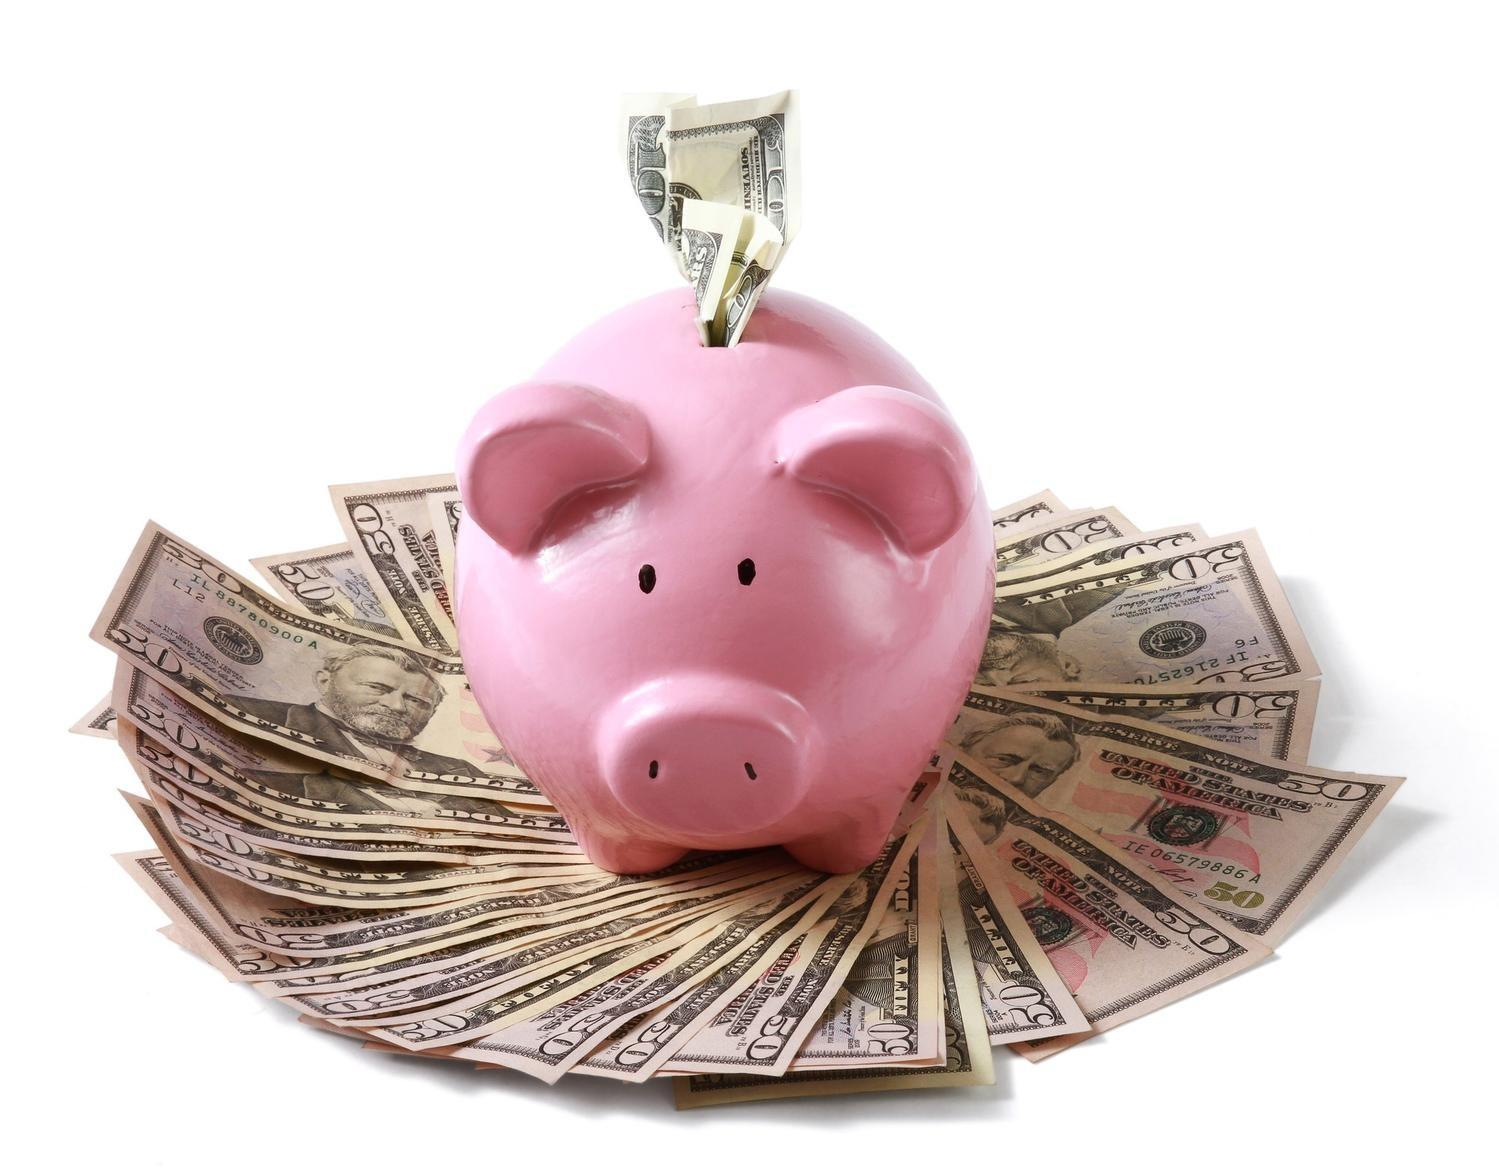 Piggy Bank overflowing with Money